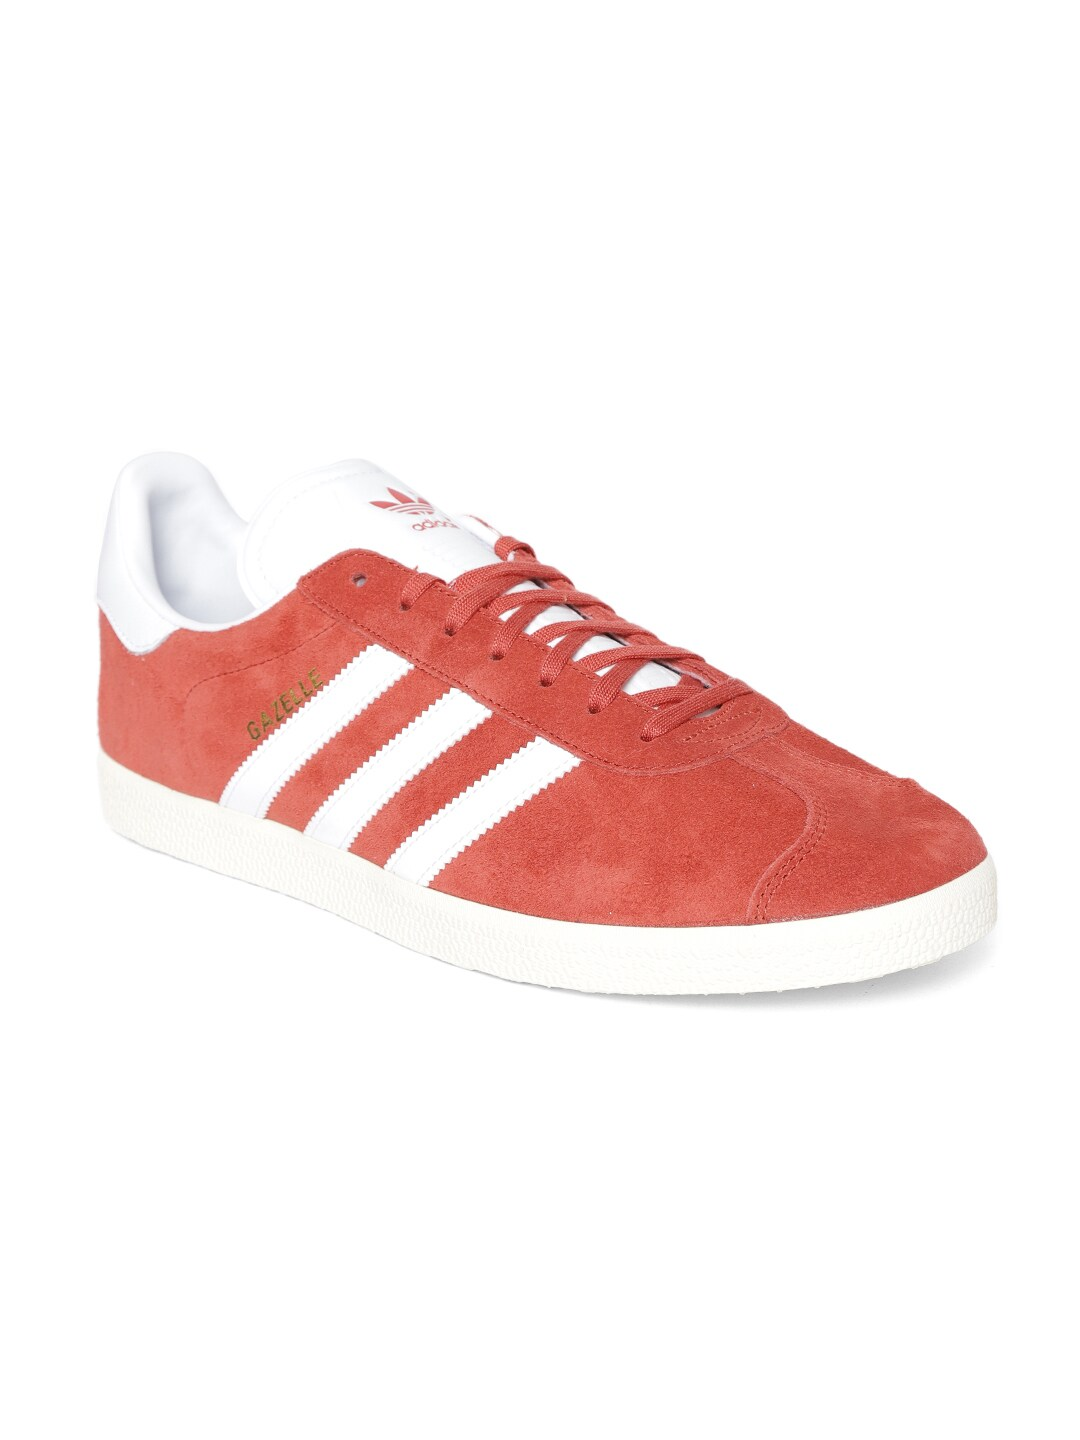 new arrival 2927c d8ecb Adidas Gazelle Sneakers - Buy Adidas Gazelle Sneakers online in India